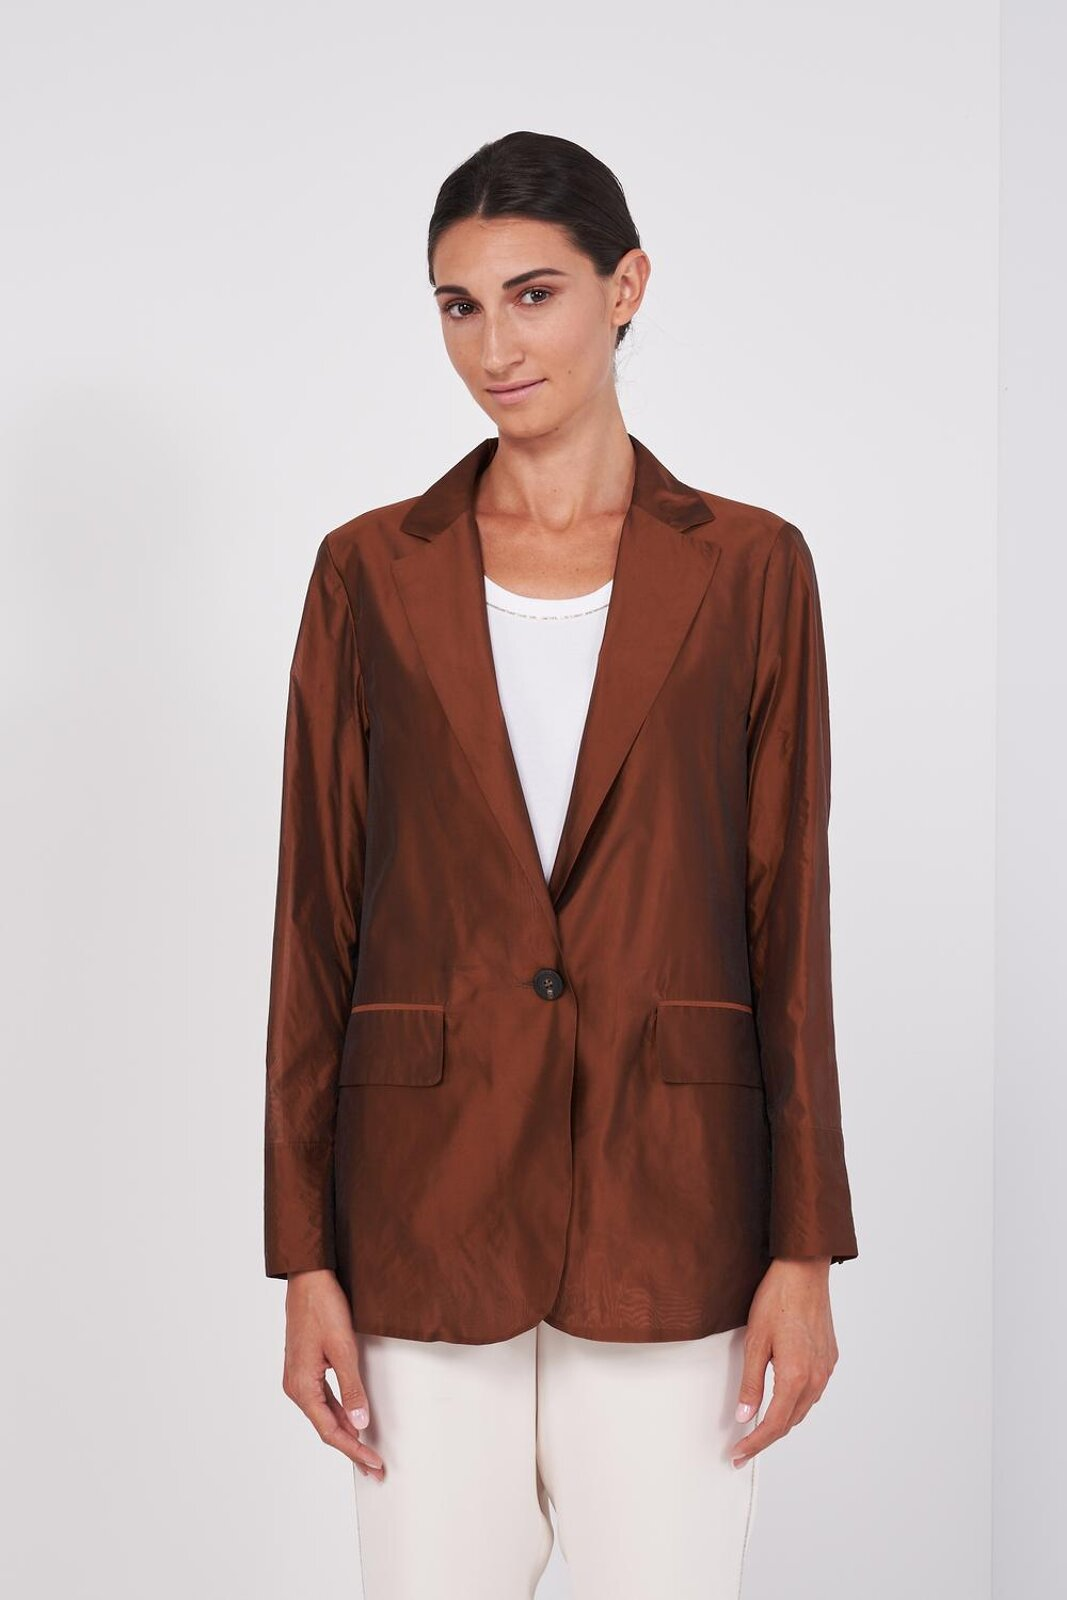 Long Sleeve Structured Blazer Jacket In Organza Fabric. Two Front Buttons, Side Pockets. Straight and regular fit. - Peserico